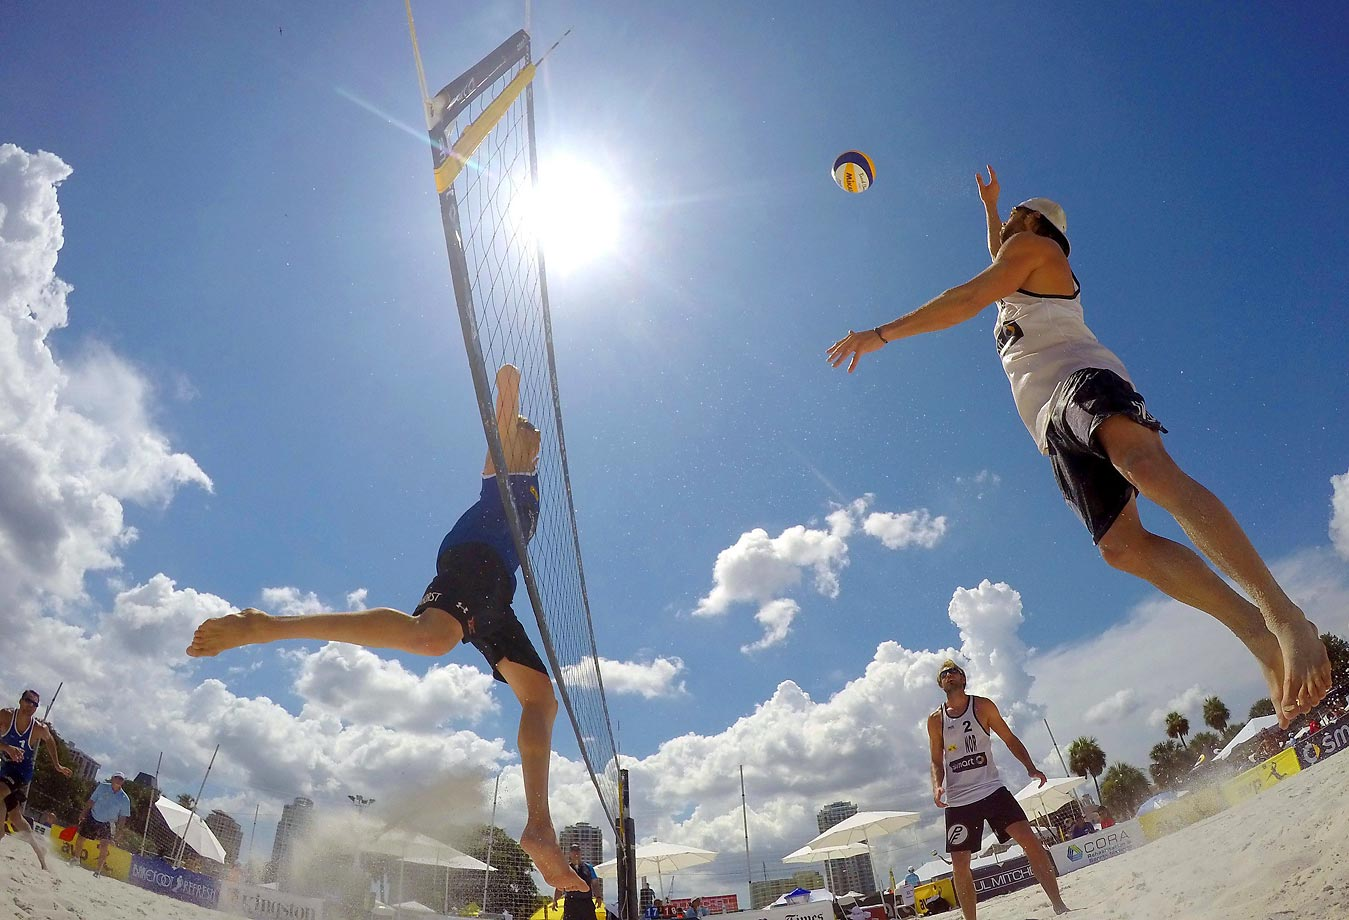 Reinder Nummerdor and Christiaan Varenhorst of the Netherlands play Iver Andreas Olsen and Geir Eithun of Norway.